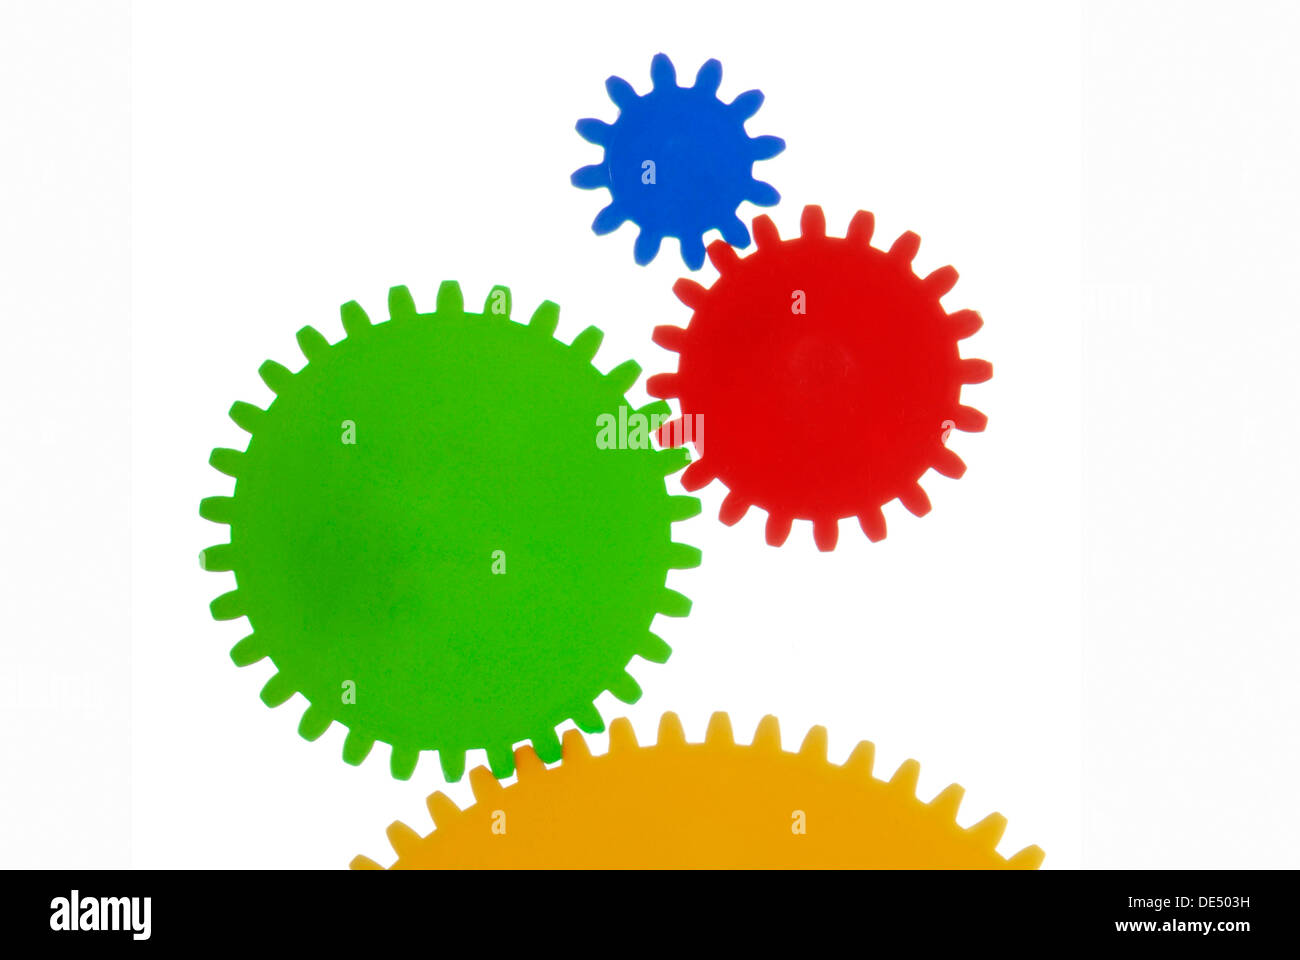 Gears with different colours and sizes, symbolic image for collaboration - Stock Image